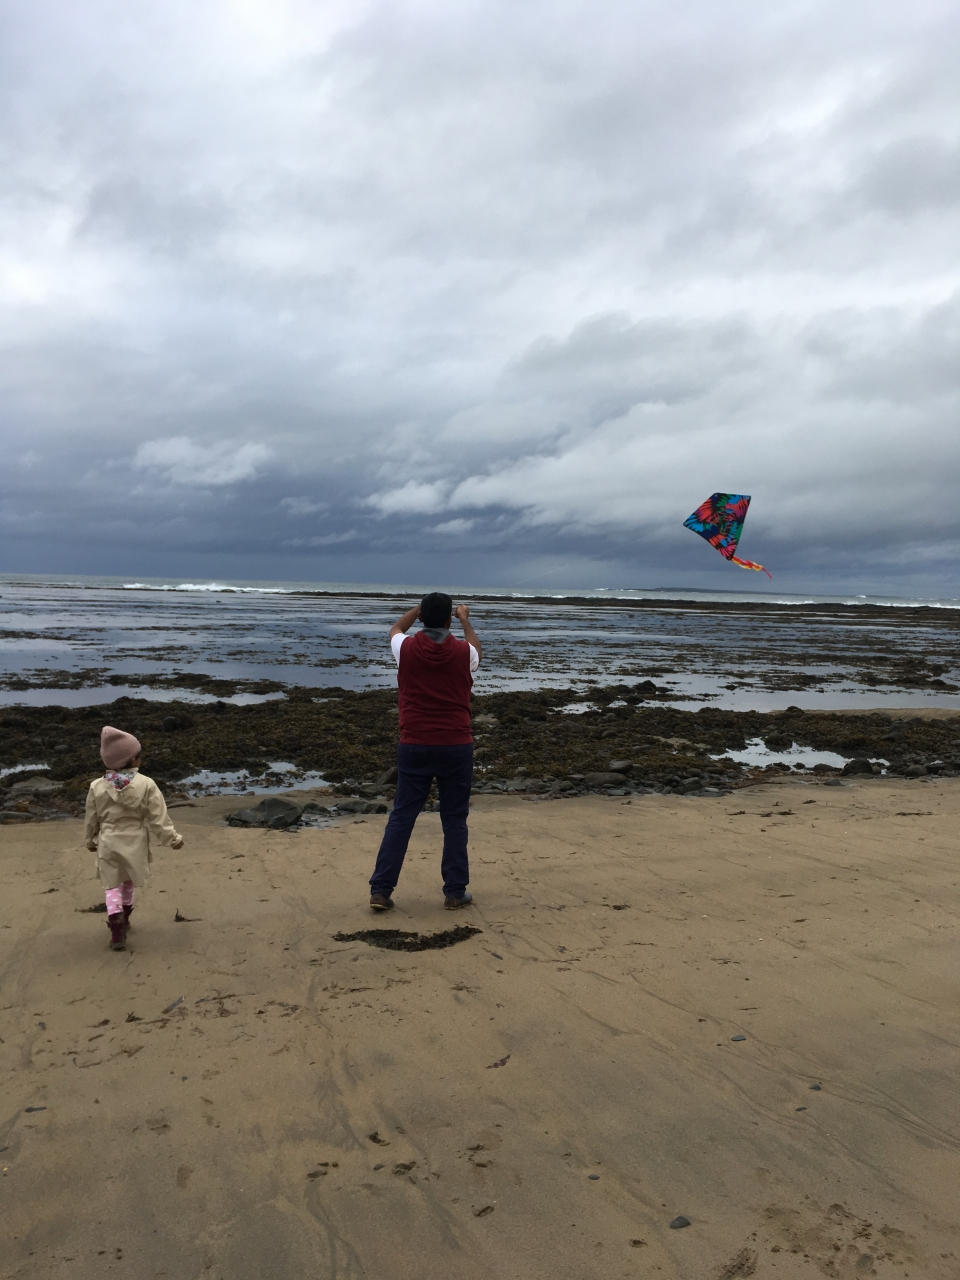 Kiteflying with kids at the beach